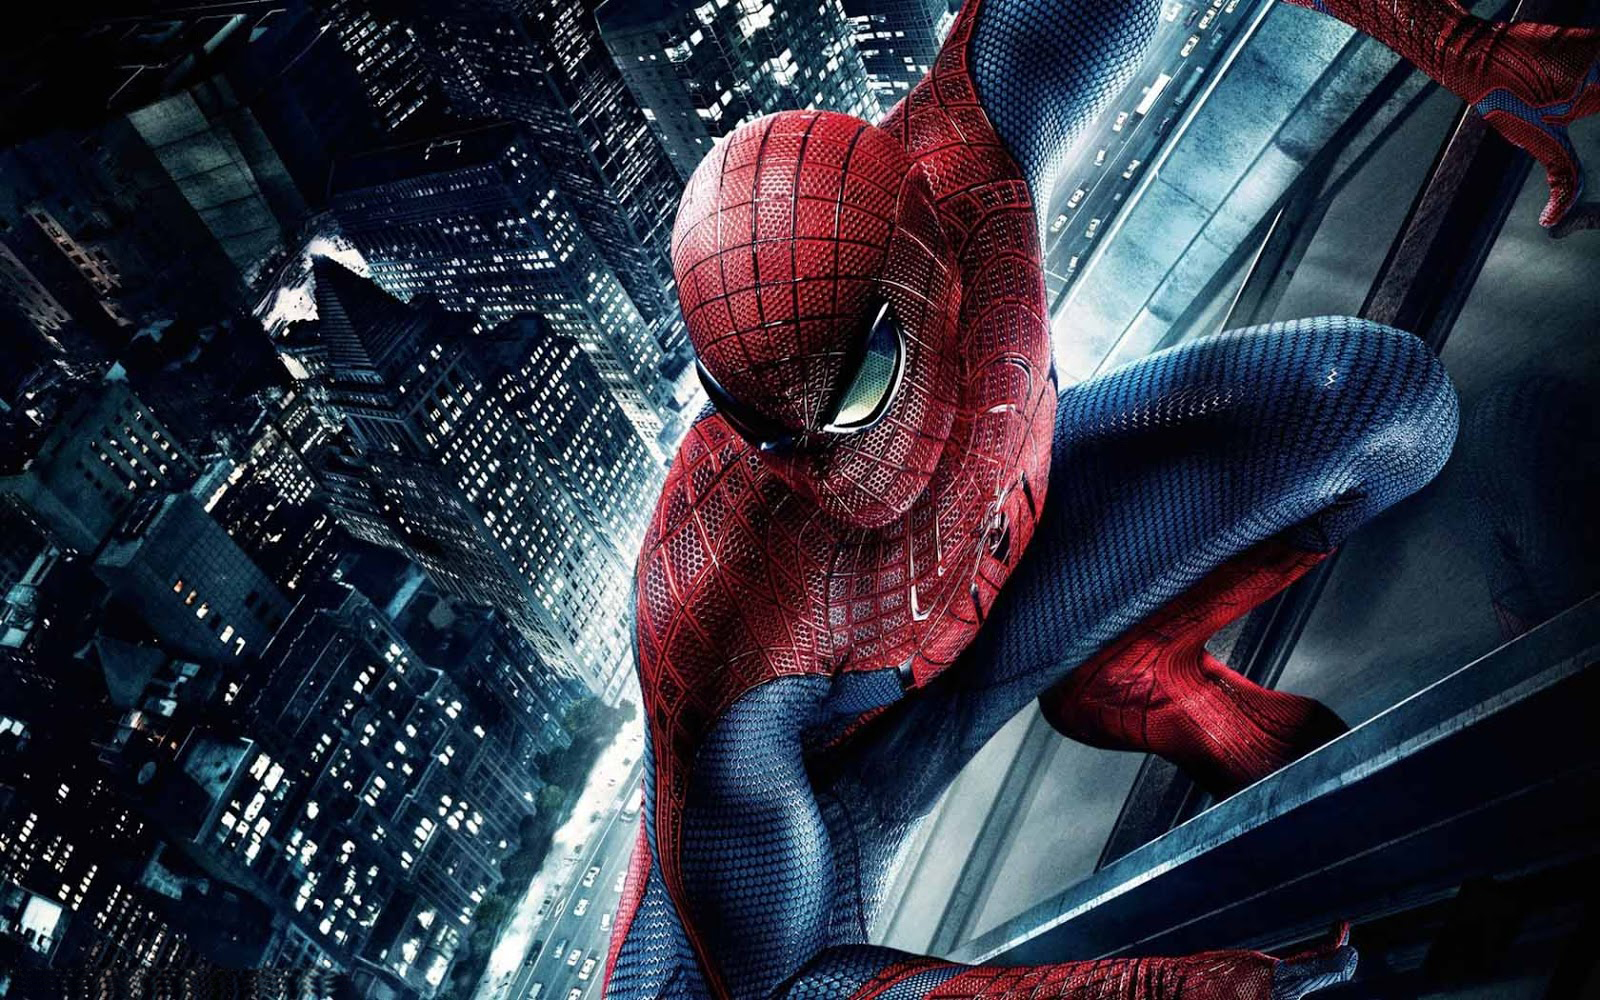 Free Download Wallpaperspoints Spider Man Pc Wallpapers Full